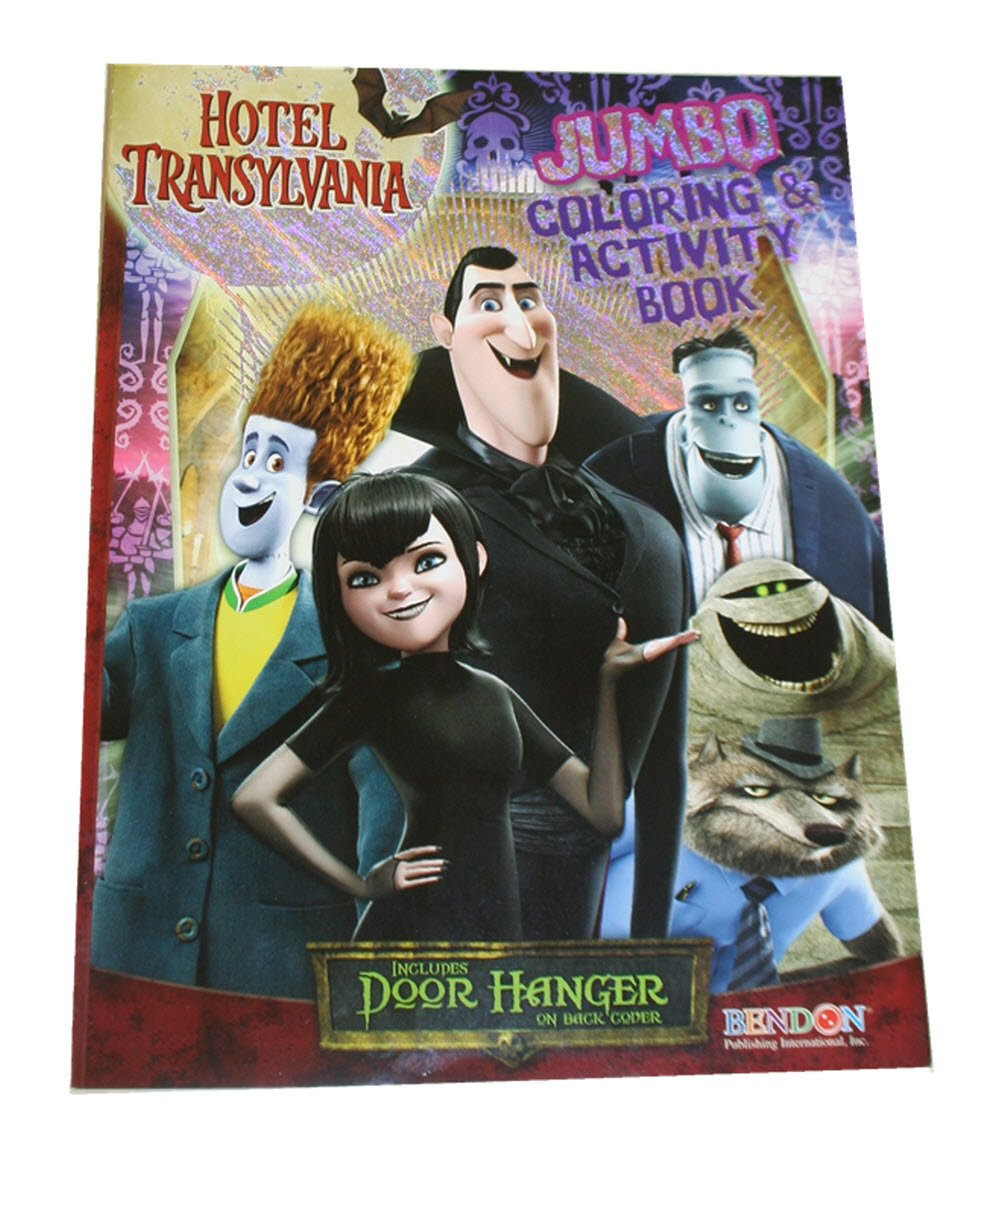 Hotel Transylvania Jumbo Coloring & Activity Book Bendon Publishing